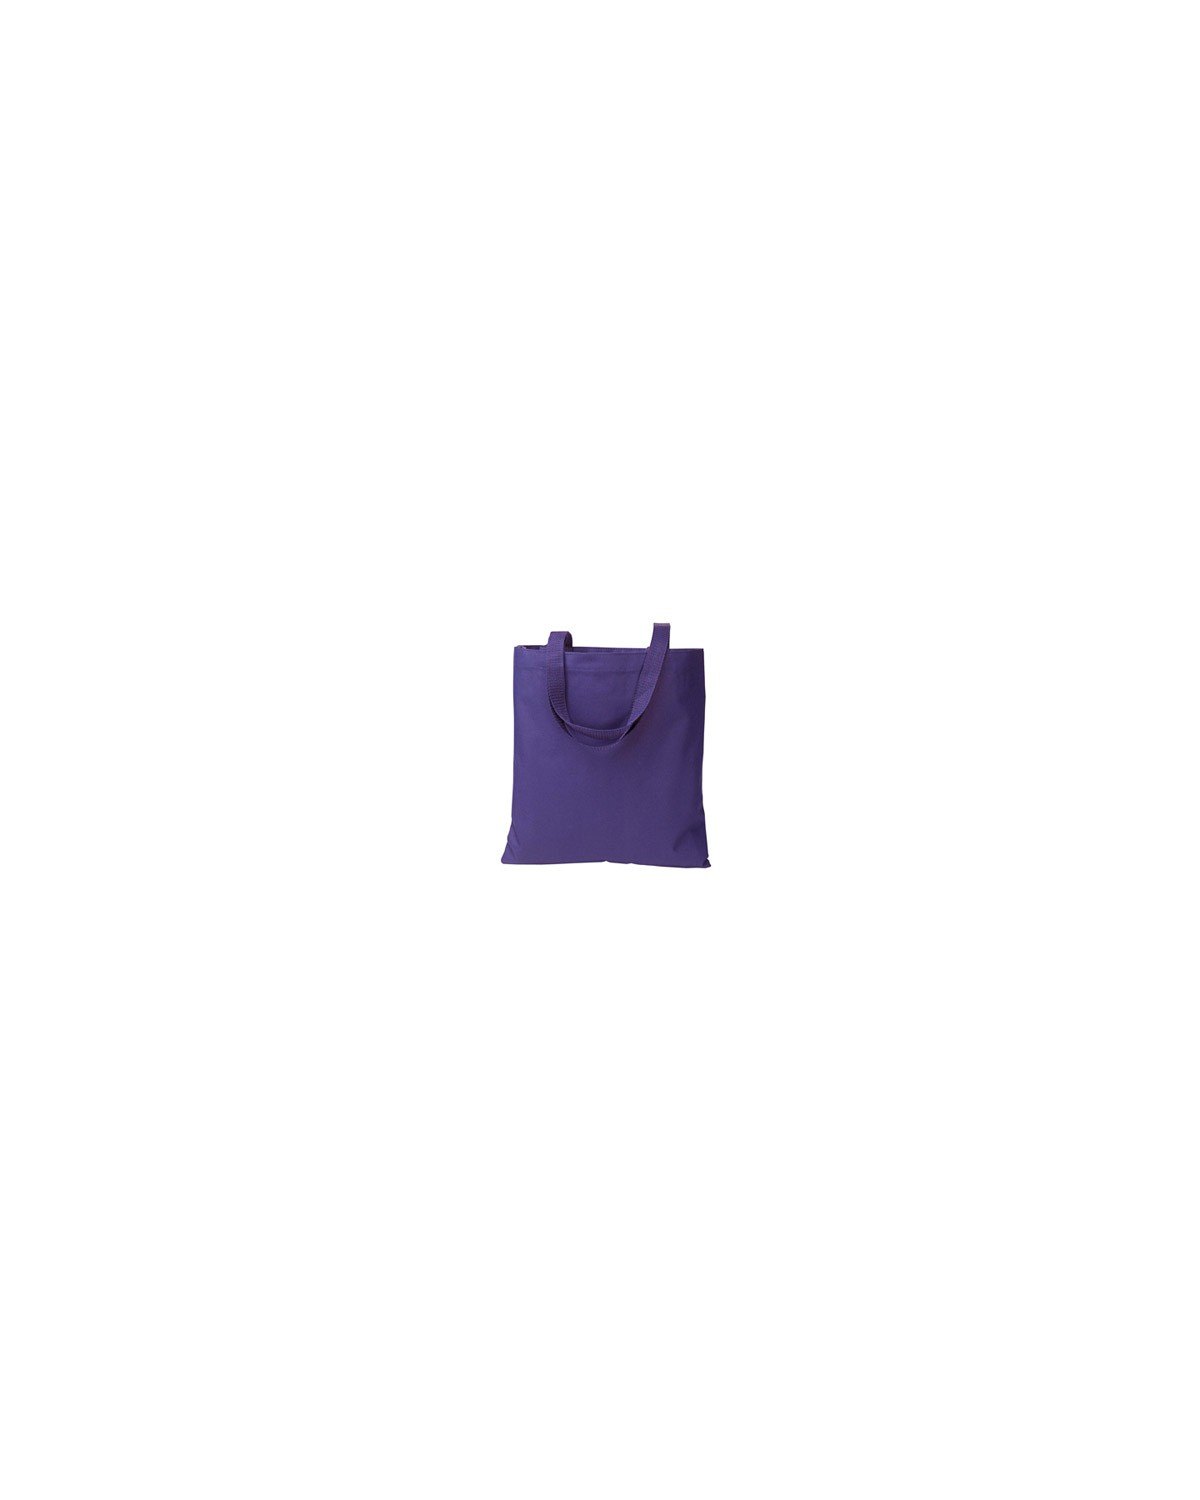 8801 Liberty Bags PURPLE